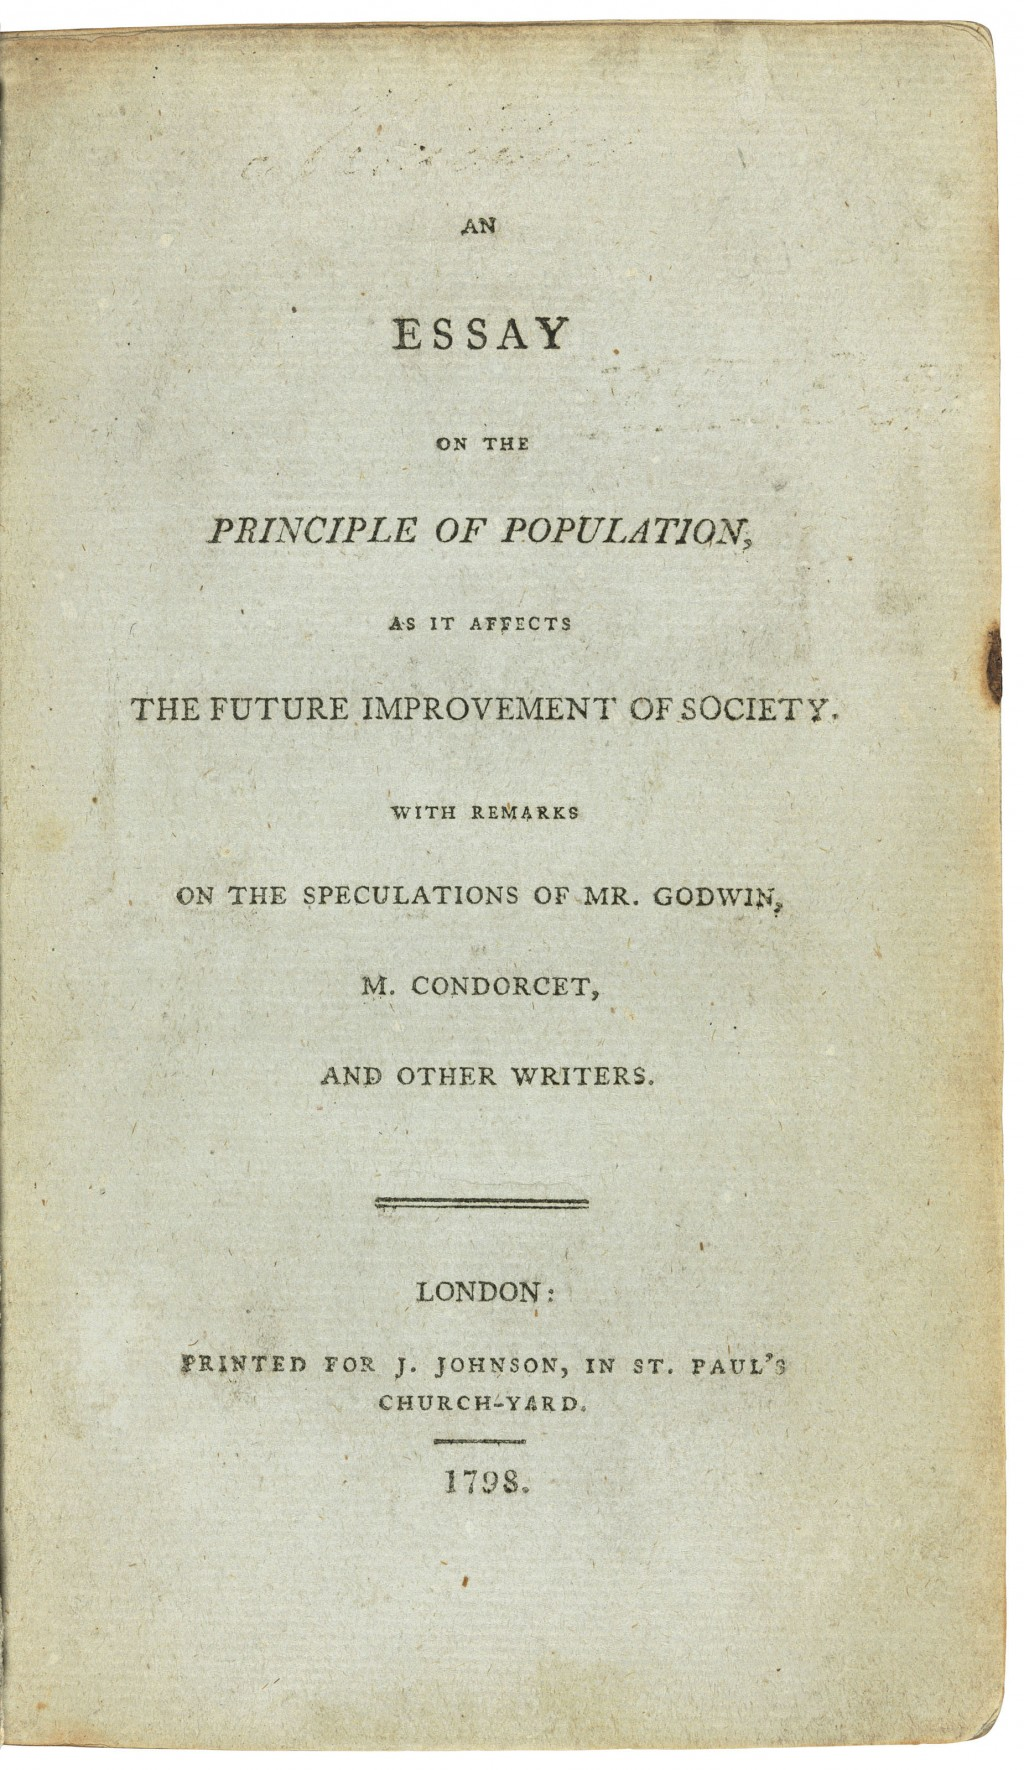 018 2018 Cks 16018 0261 000malthus Thomas Robert An Essay On The Principle Of As It Af Example Fascinating Population By Malthus Pdf In Concluded Which Following Large